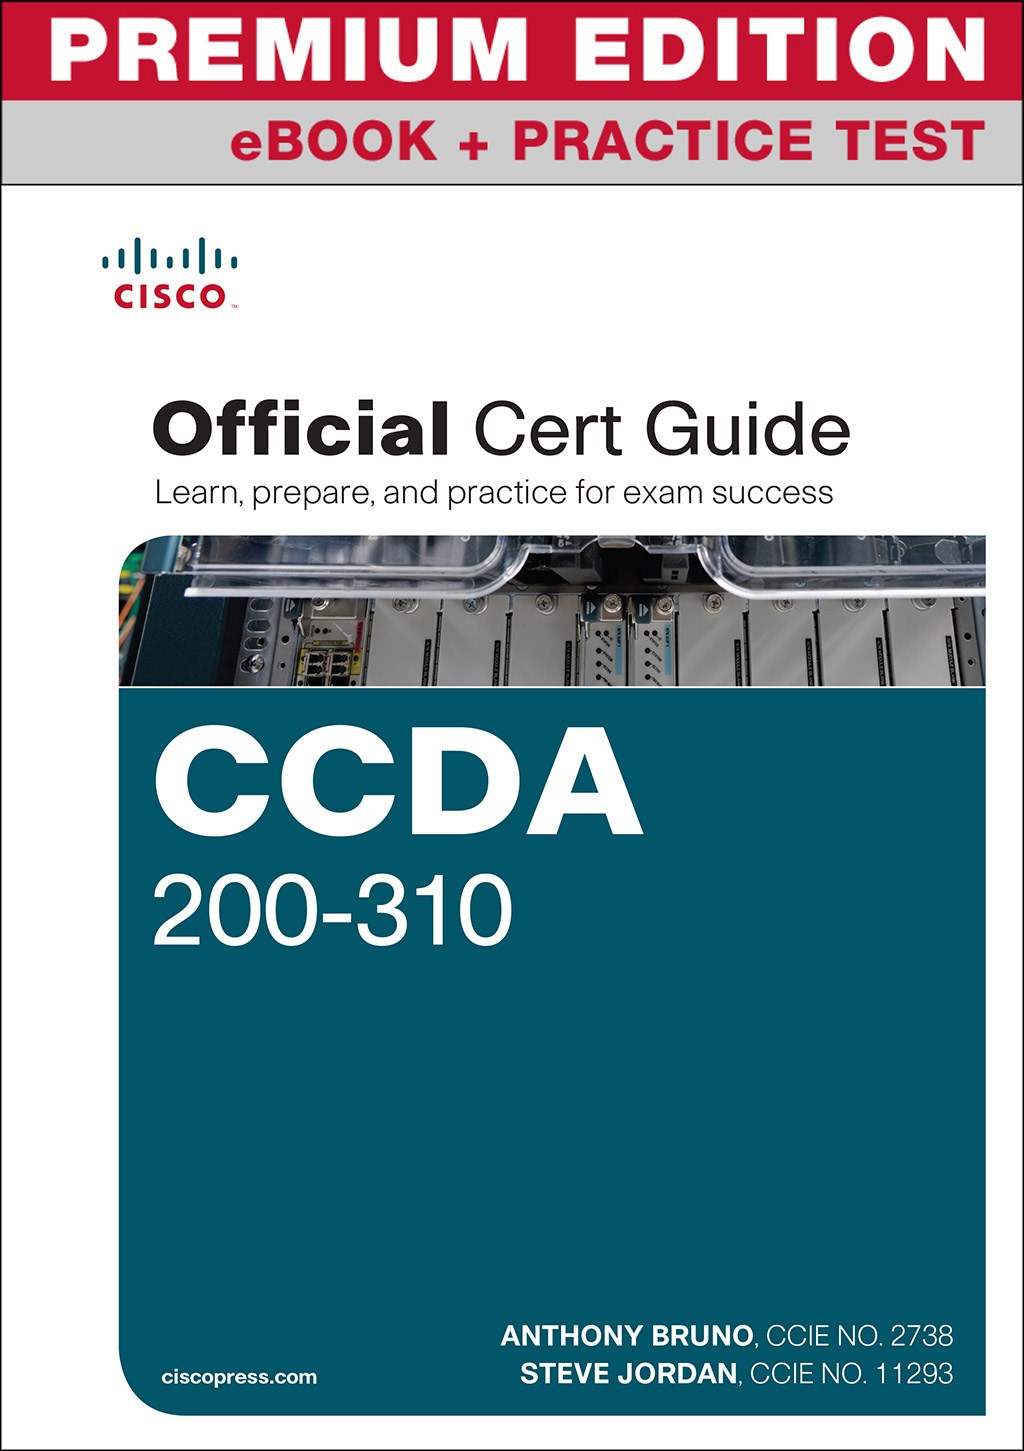 CCDA 200-310 Official Cert Guide Premium Edition and Practice Test